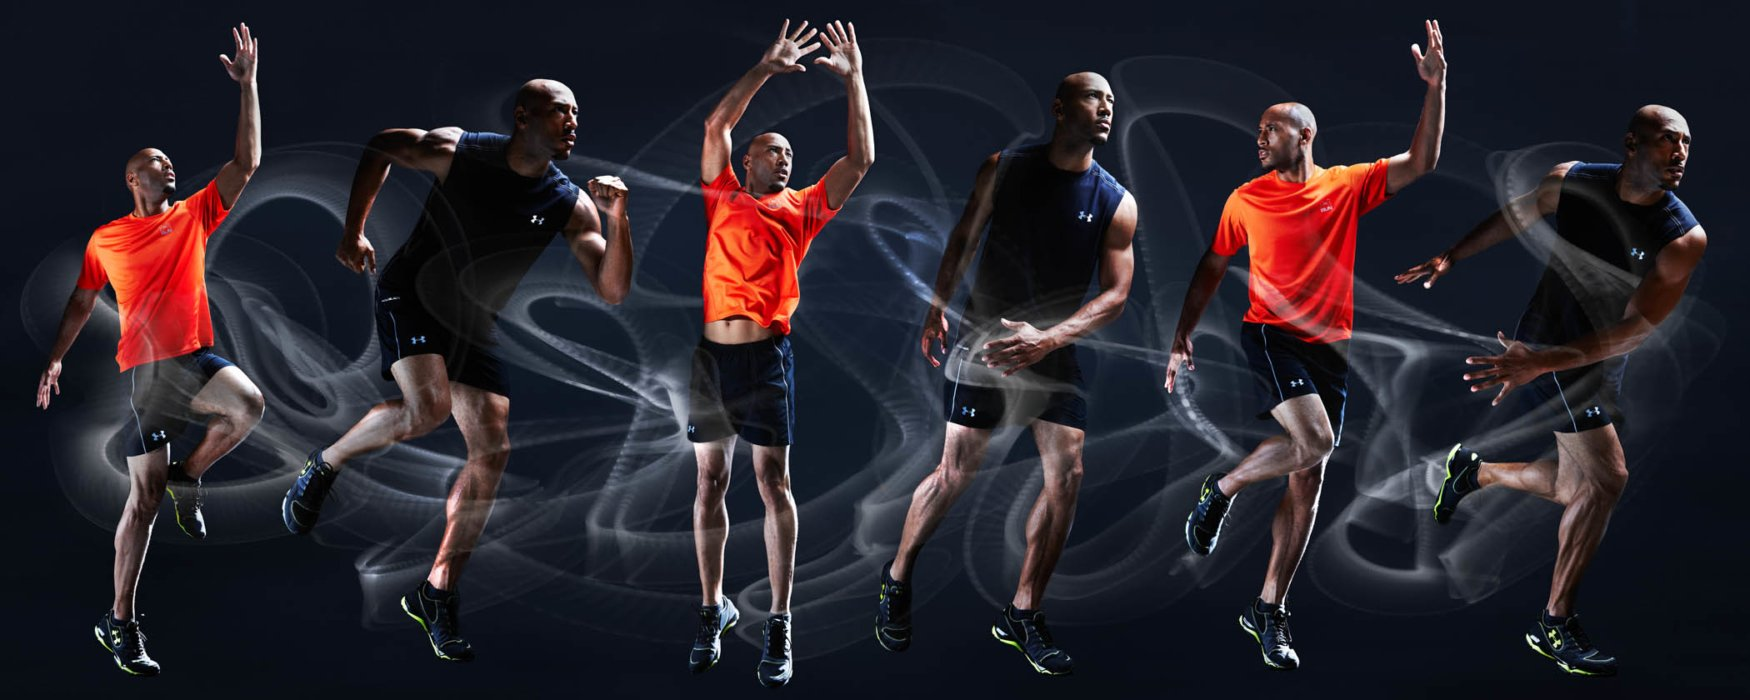 Multiple athlete shots composed with mist